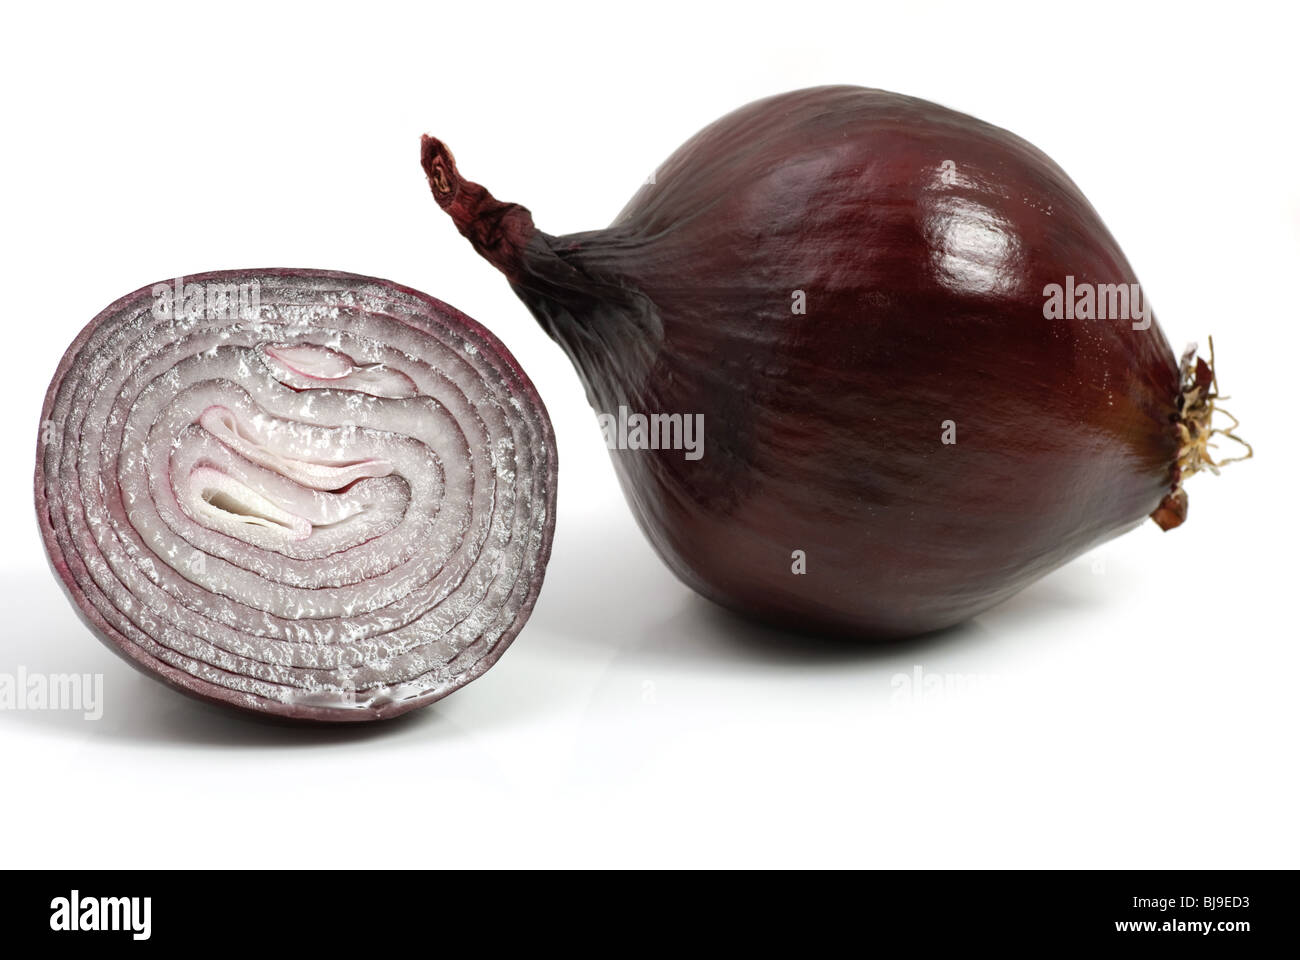 Red onion and a half isolated over white - Stock Image